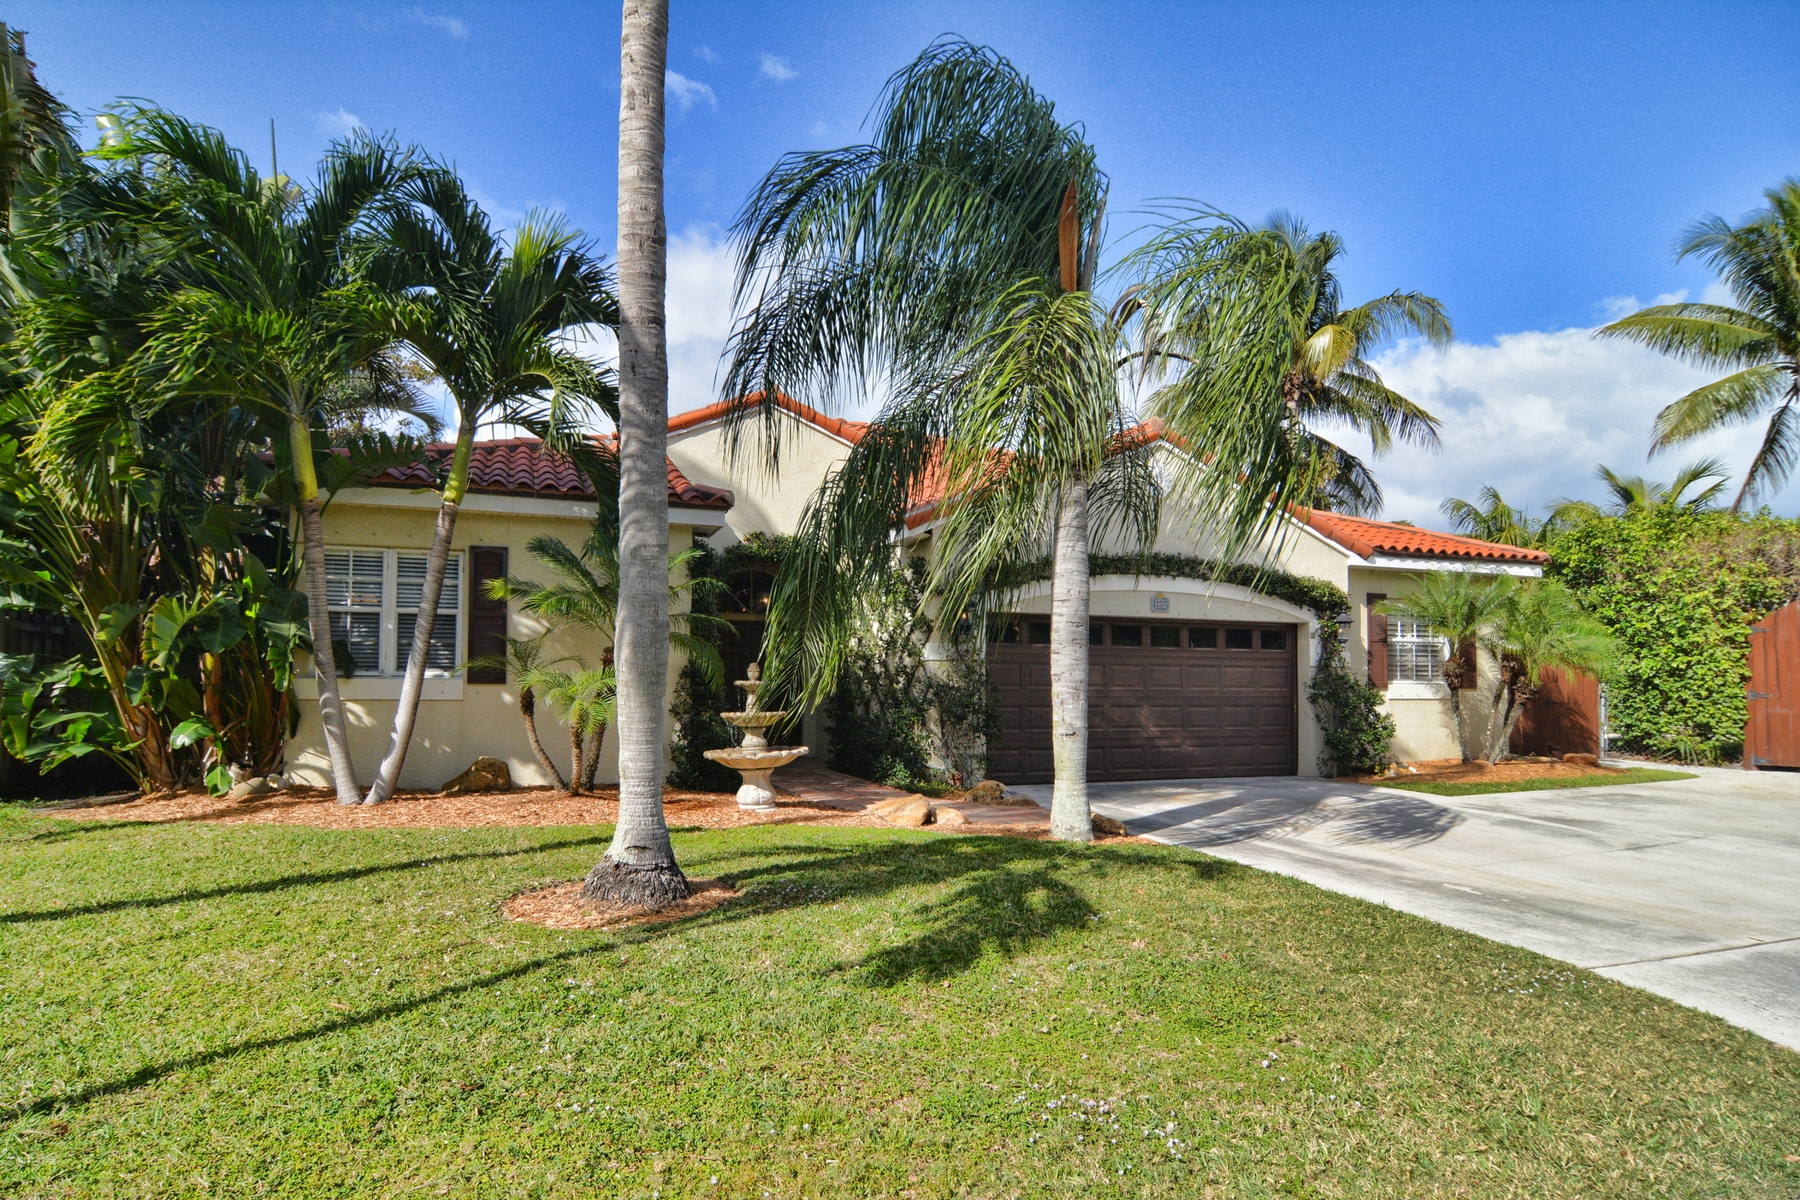 Moradia para Venda às 237 Rilyn Drive West Palm Beach, Florida, 33405 Estados Unidos